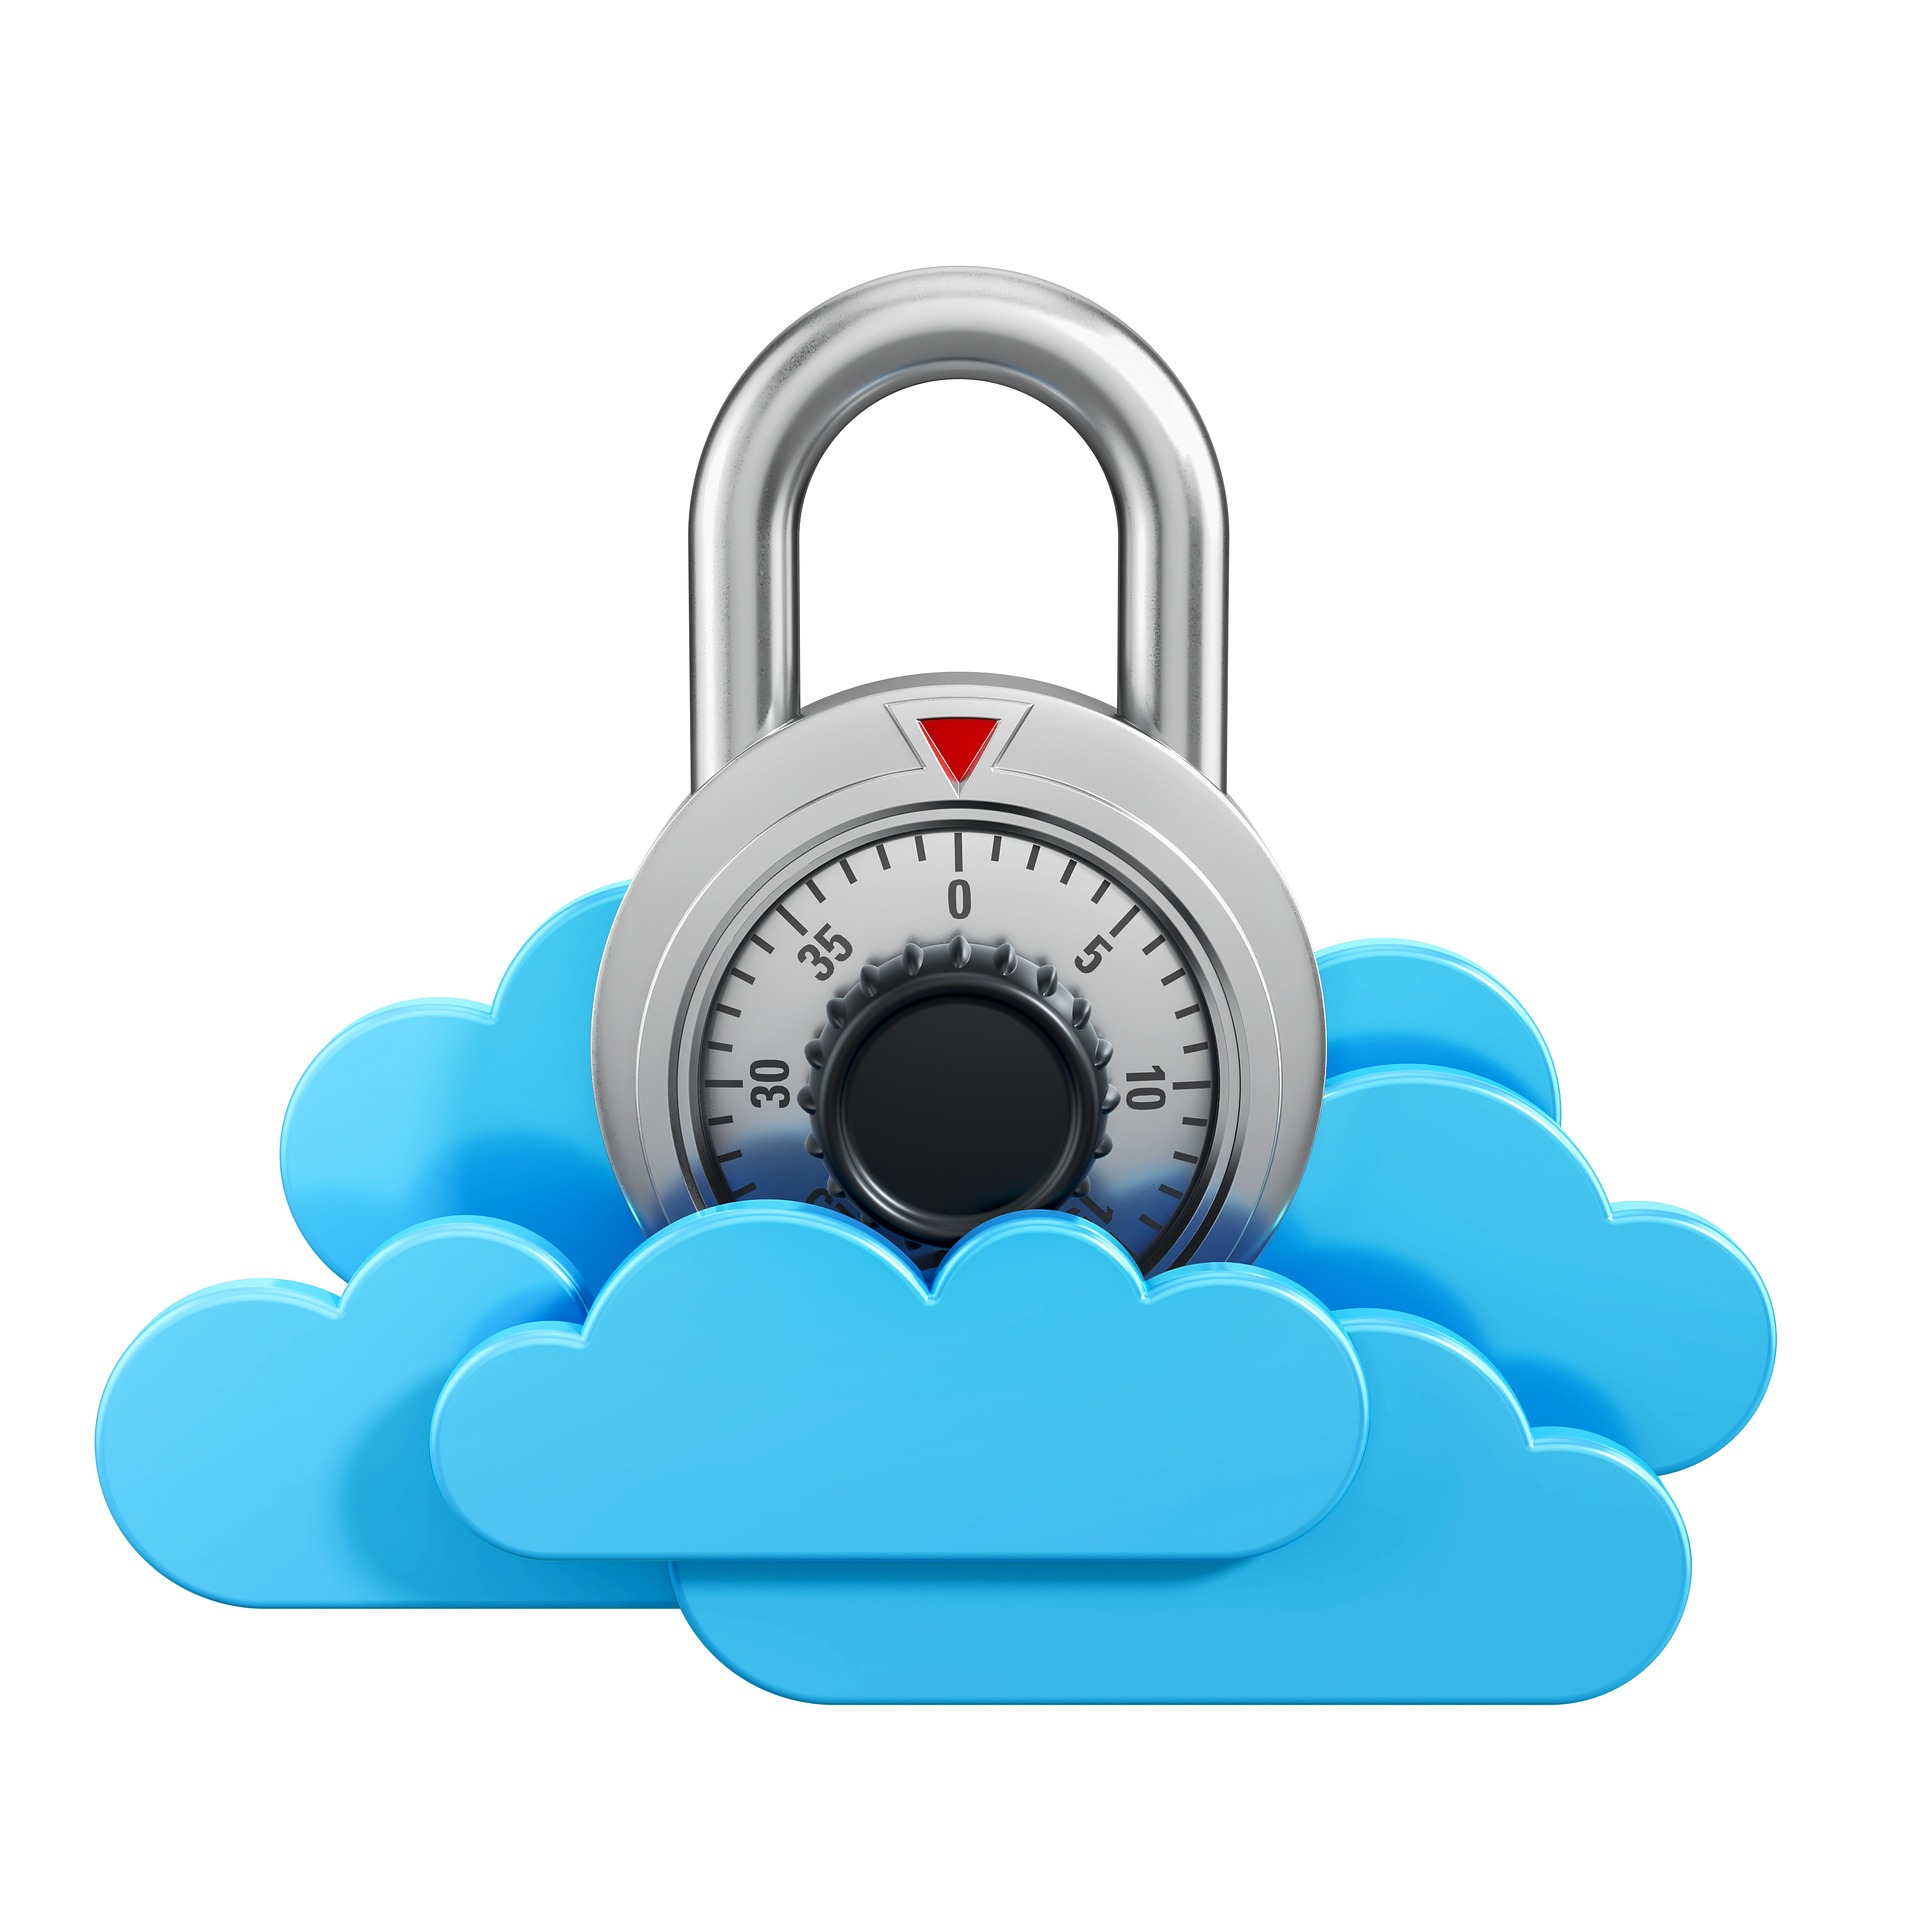 SAP CLOUD SECURITY